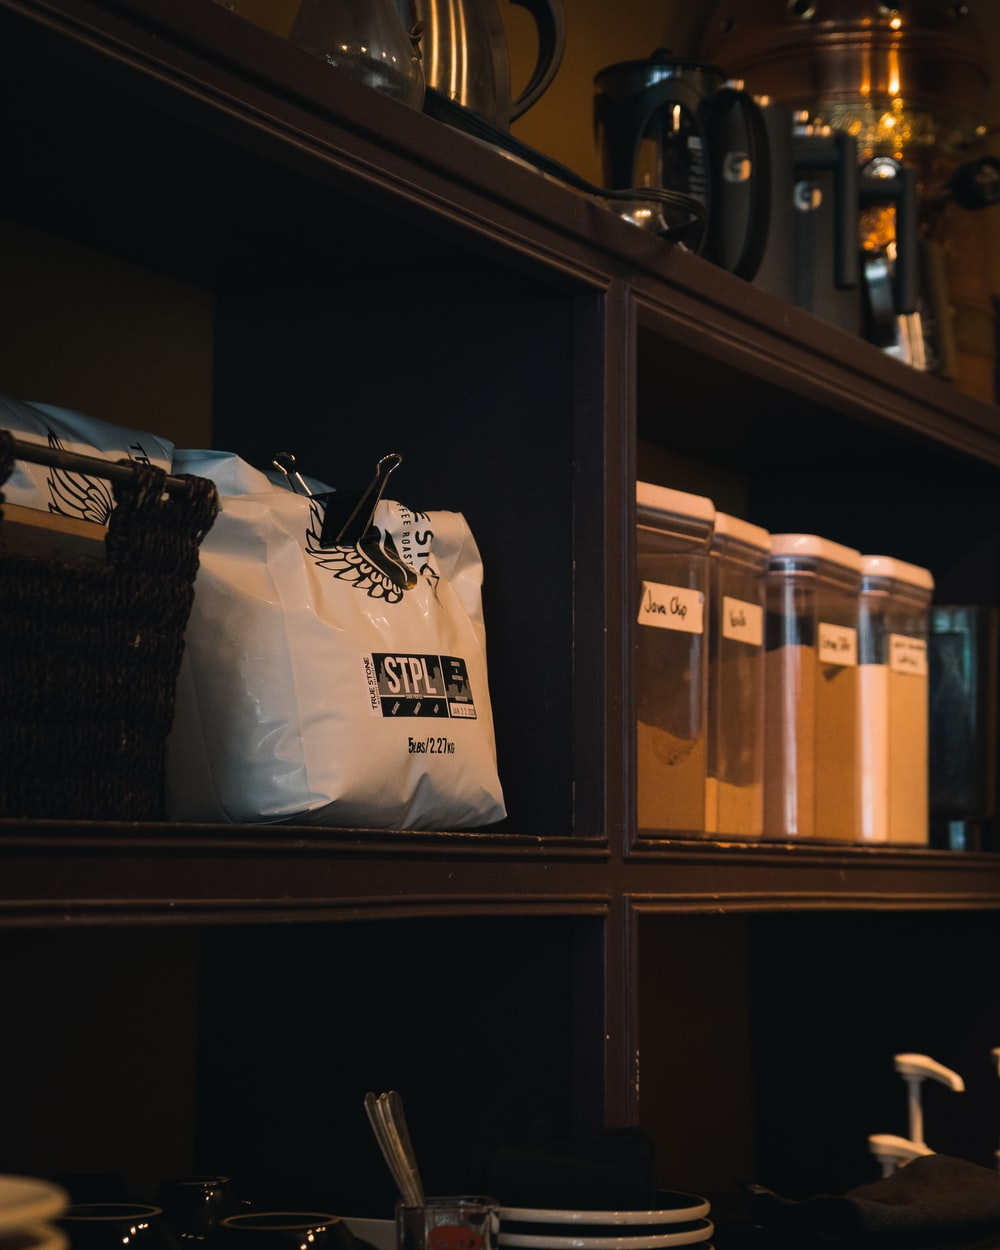 white and black plastic bag on brown wooden shelf